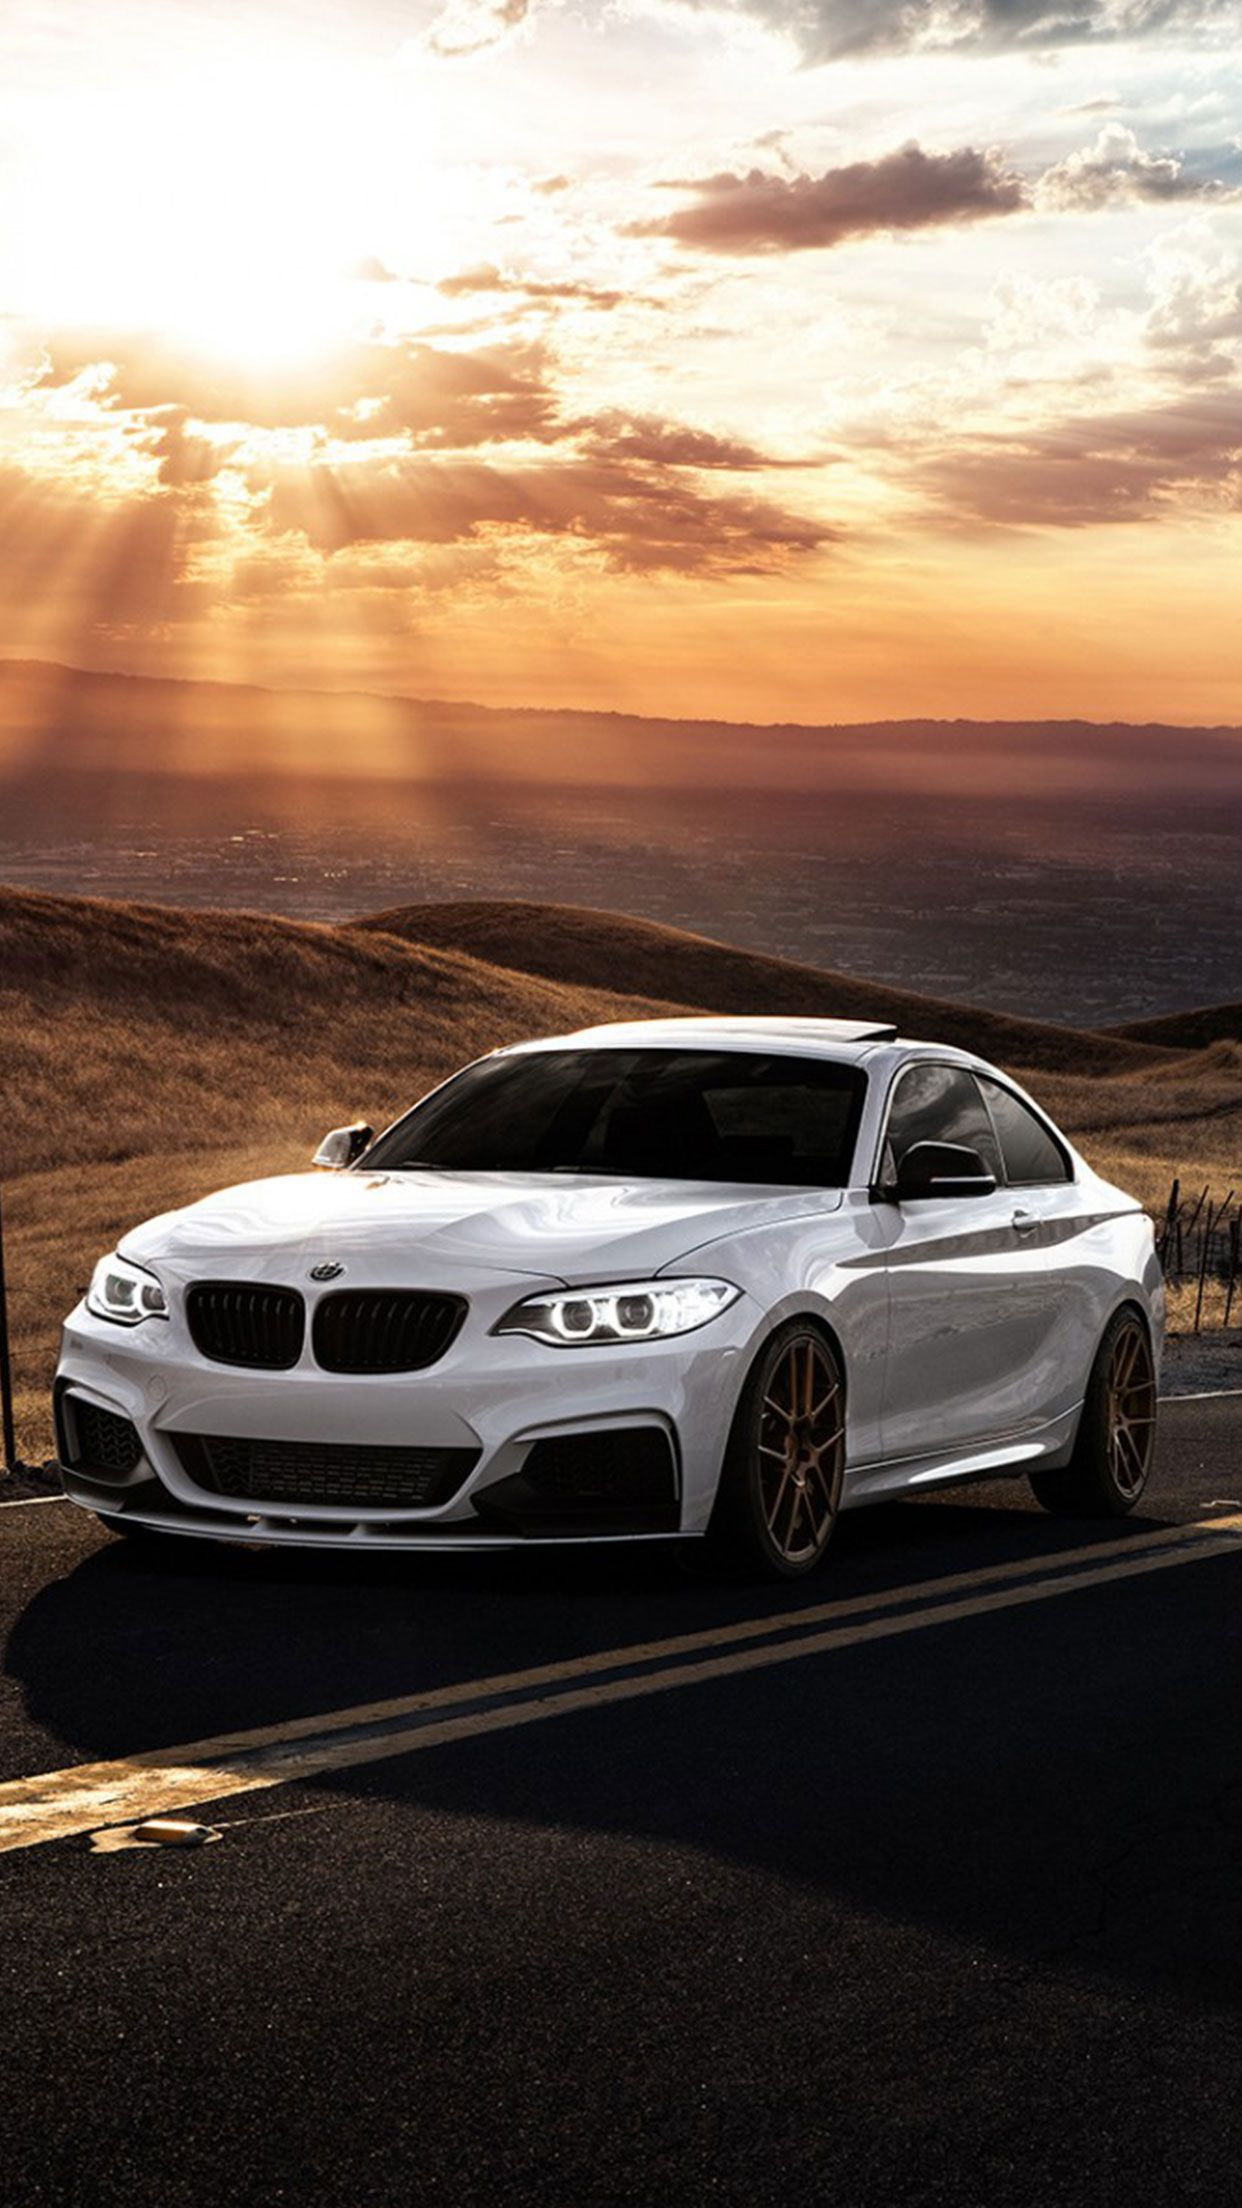 httpandroidpapers coam57 bmw car concept androidpapers co wallpapers am57 bmw car concept android wallpaper android wallpapers pinterest